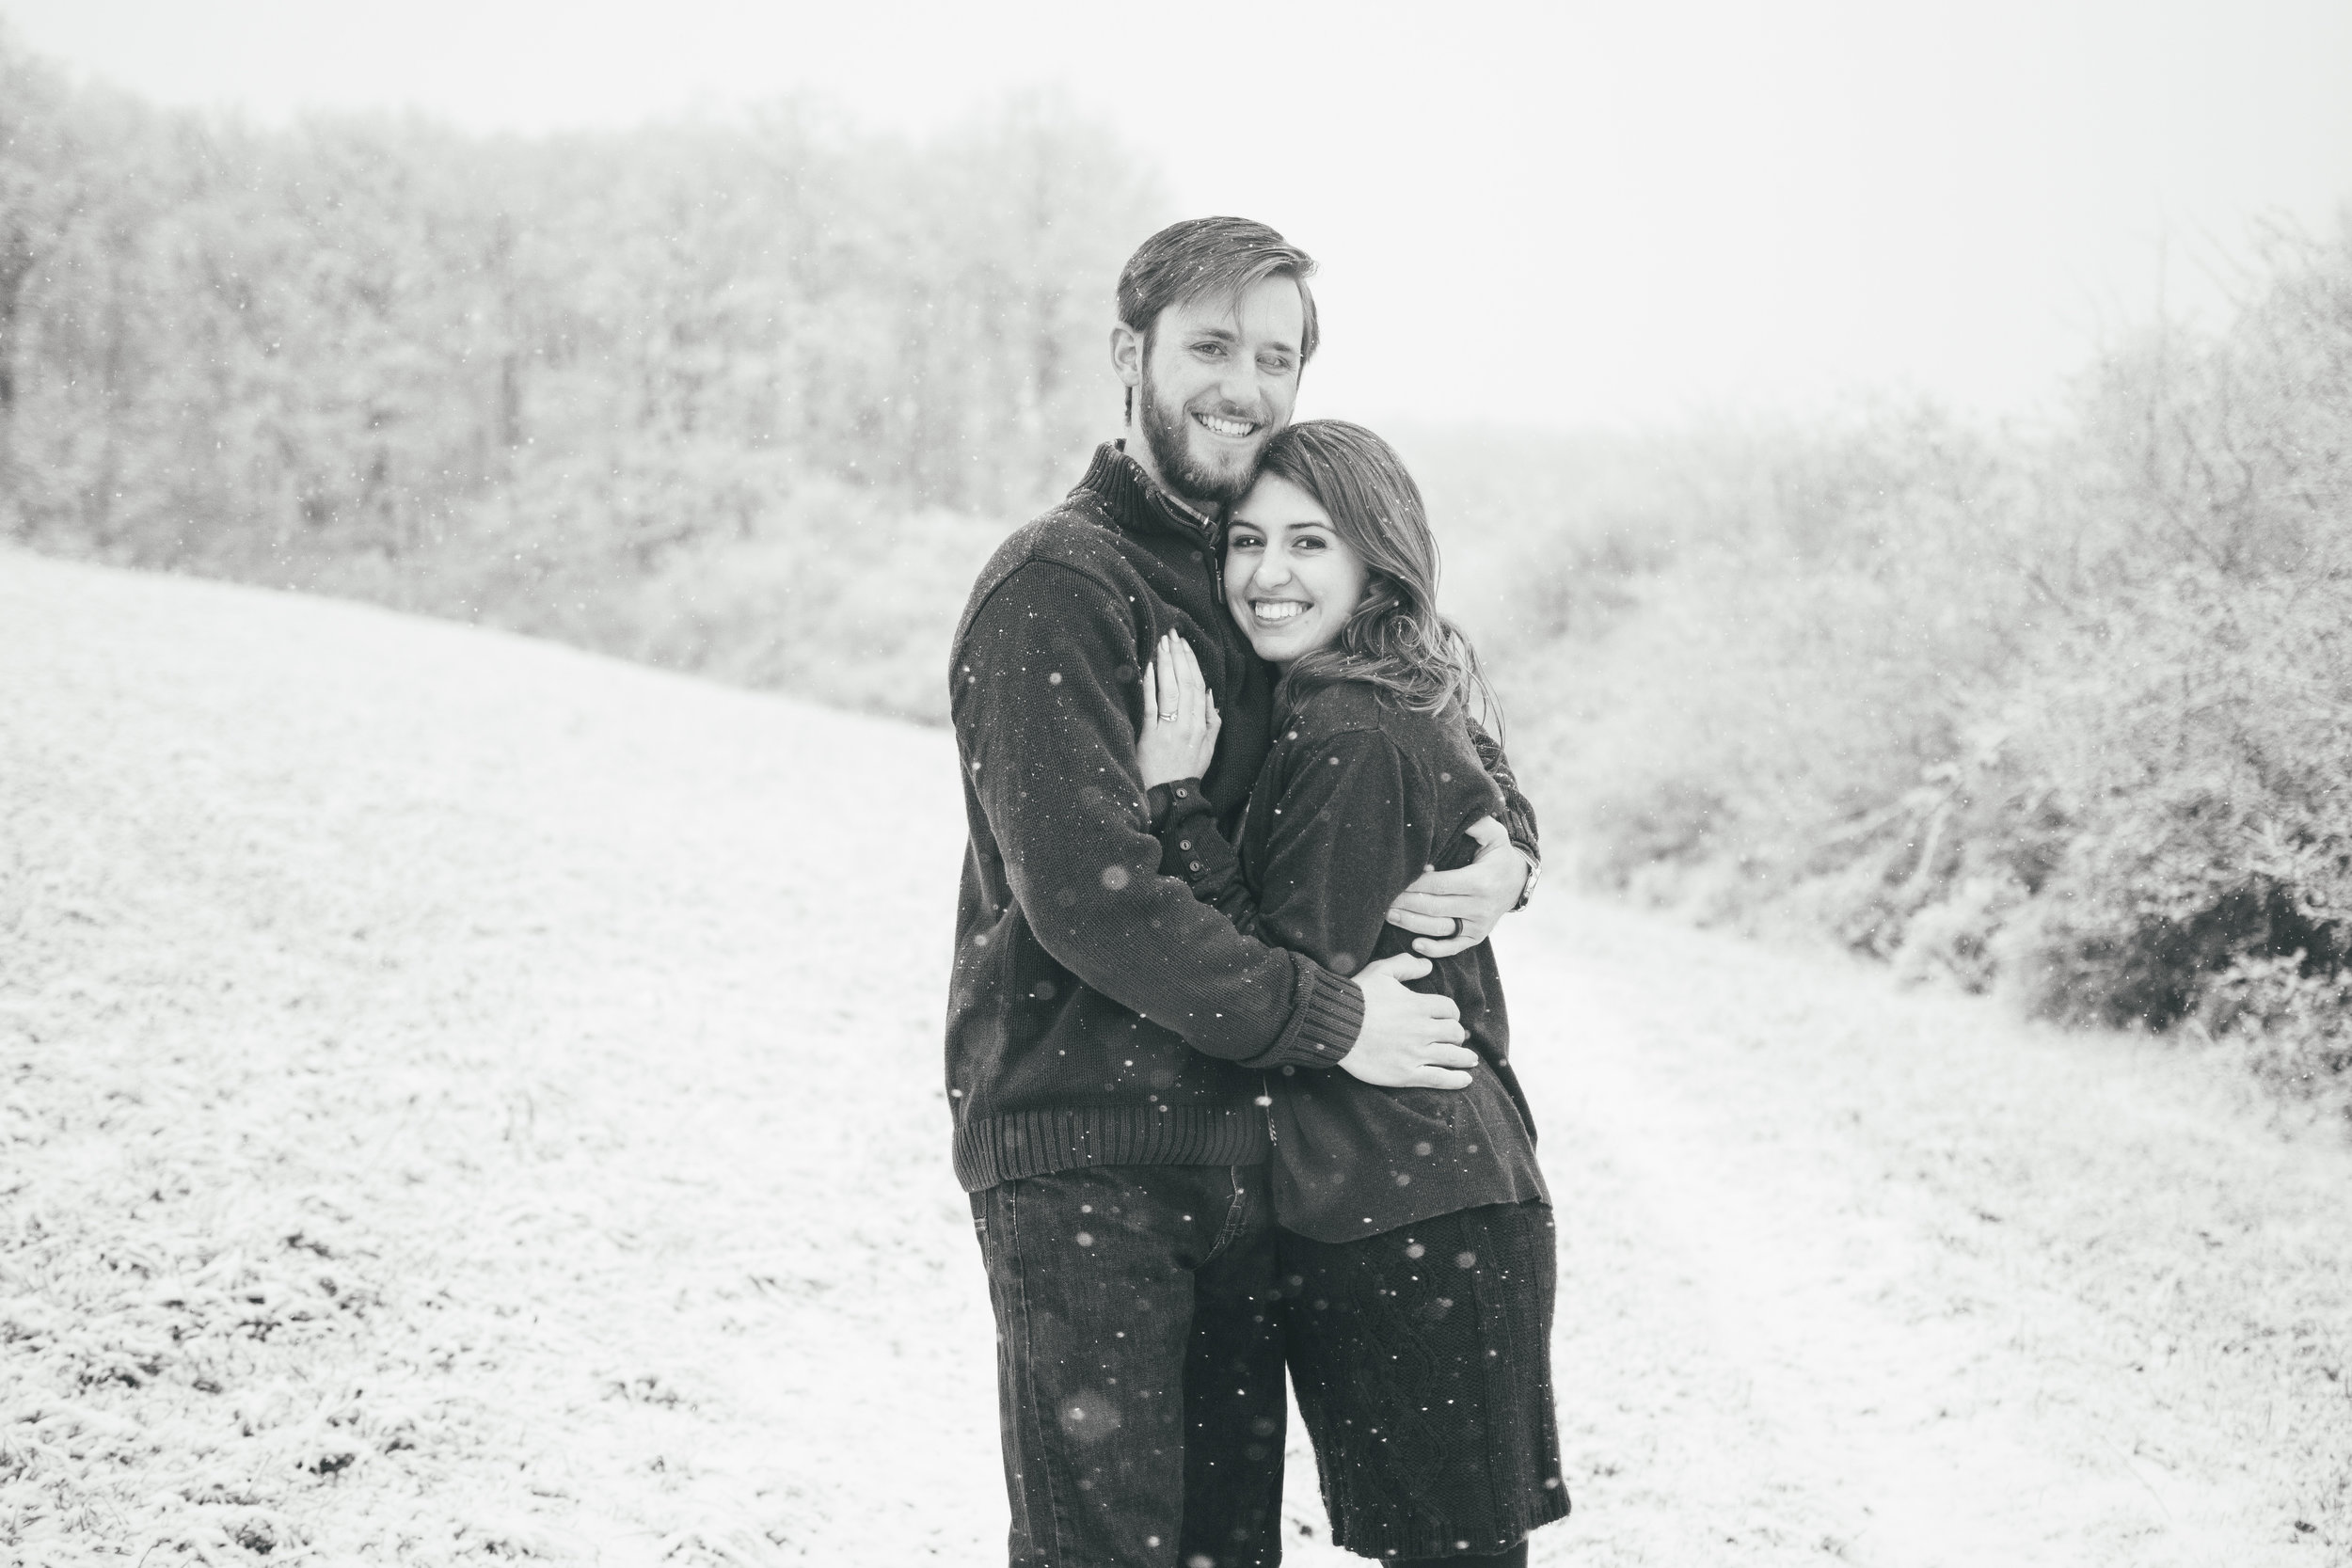 Snowy_engagement